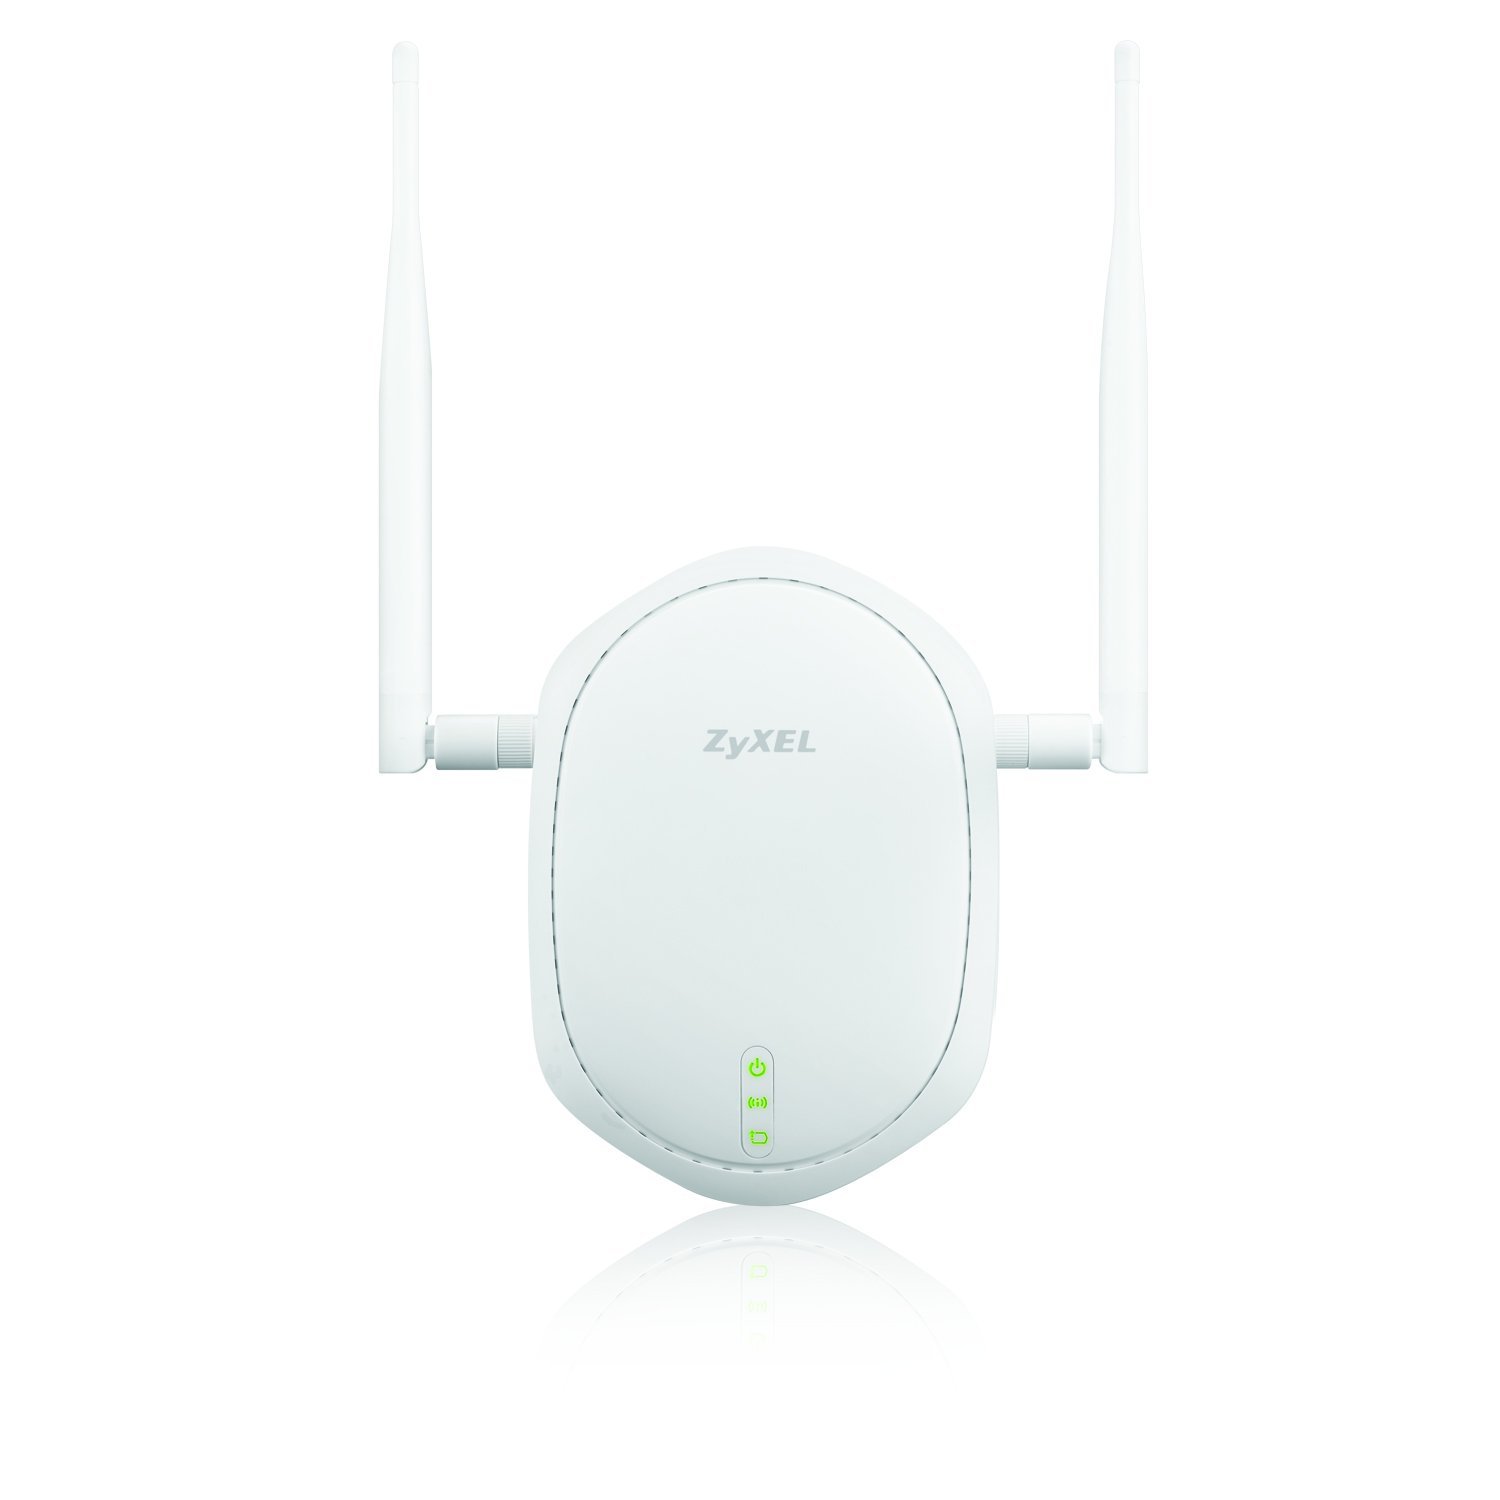 Zyxel WiFi Access Point Single Band 802.11n PoE with 2 External Antennas for Long Range [NWA1100-NH]